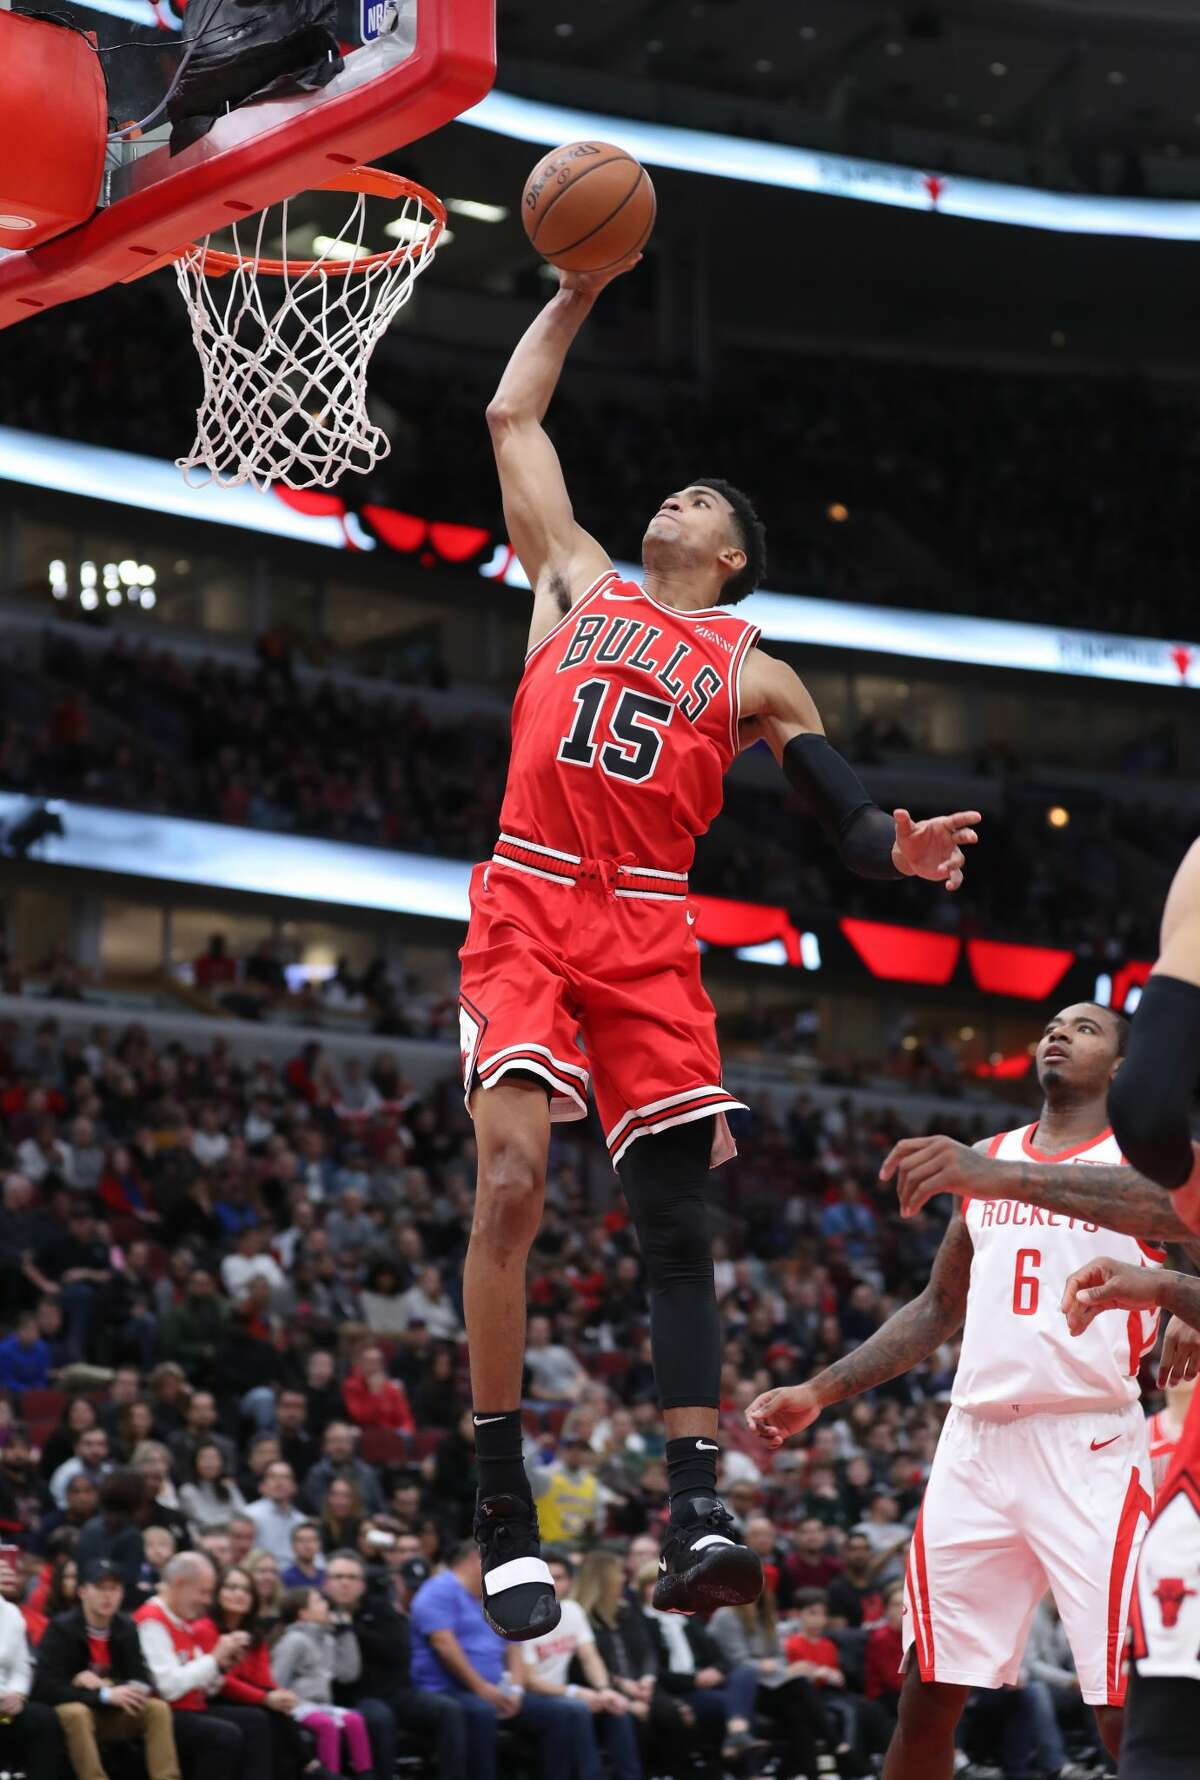 Chicago Bulls forward Chandler Hutchison (15) dunks in the second quarter against the Houston Rockets at the United Center Saturday, Nov. 3, 2018, in Chicago. The Rockets beat the Bulls 96-88. (John J. Kim/Chicago Tribune/TNS)